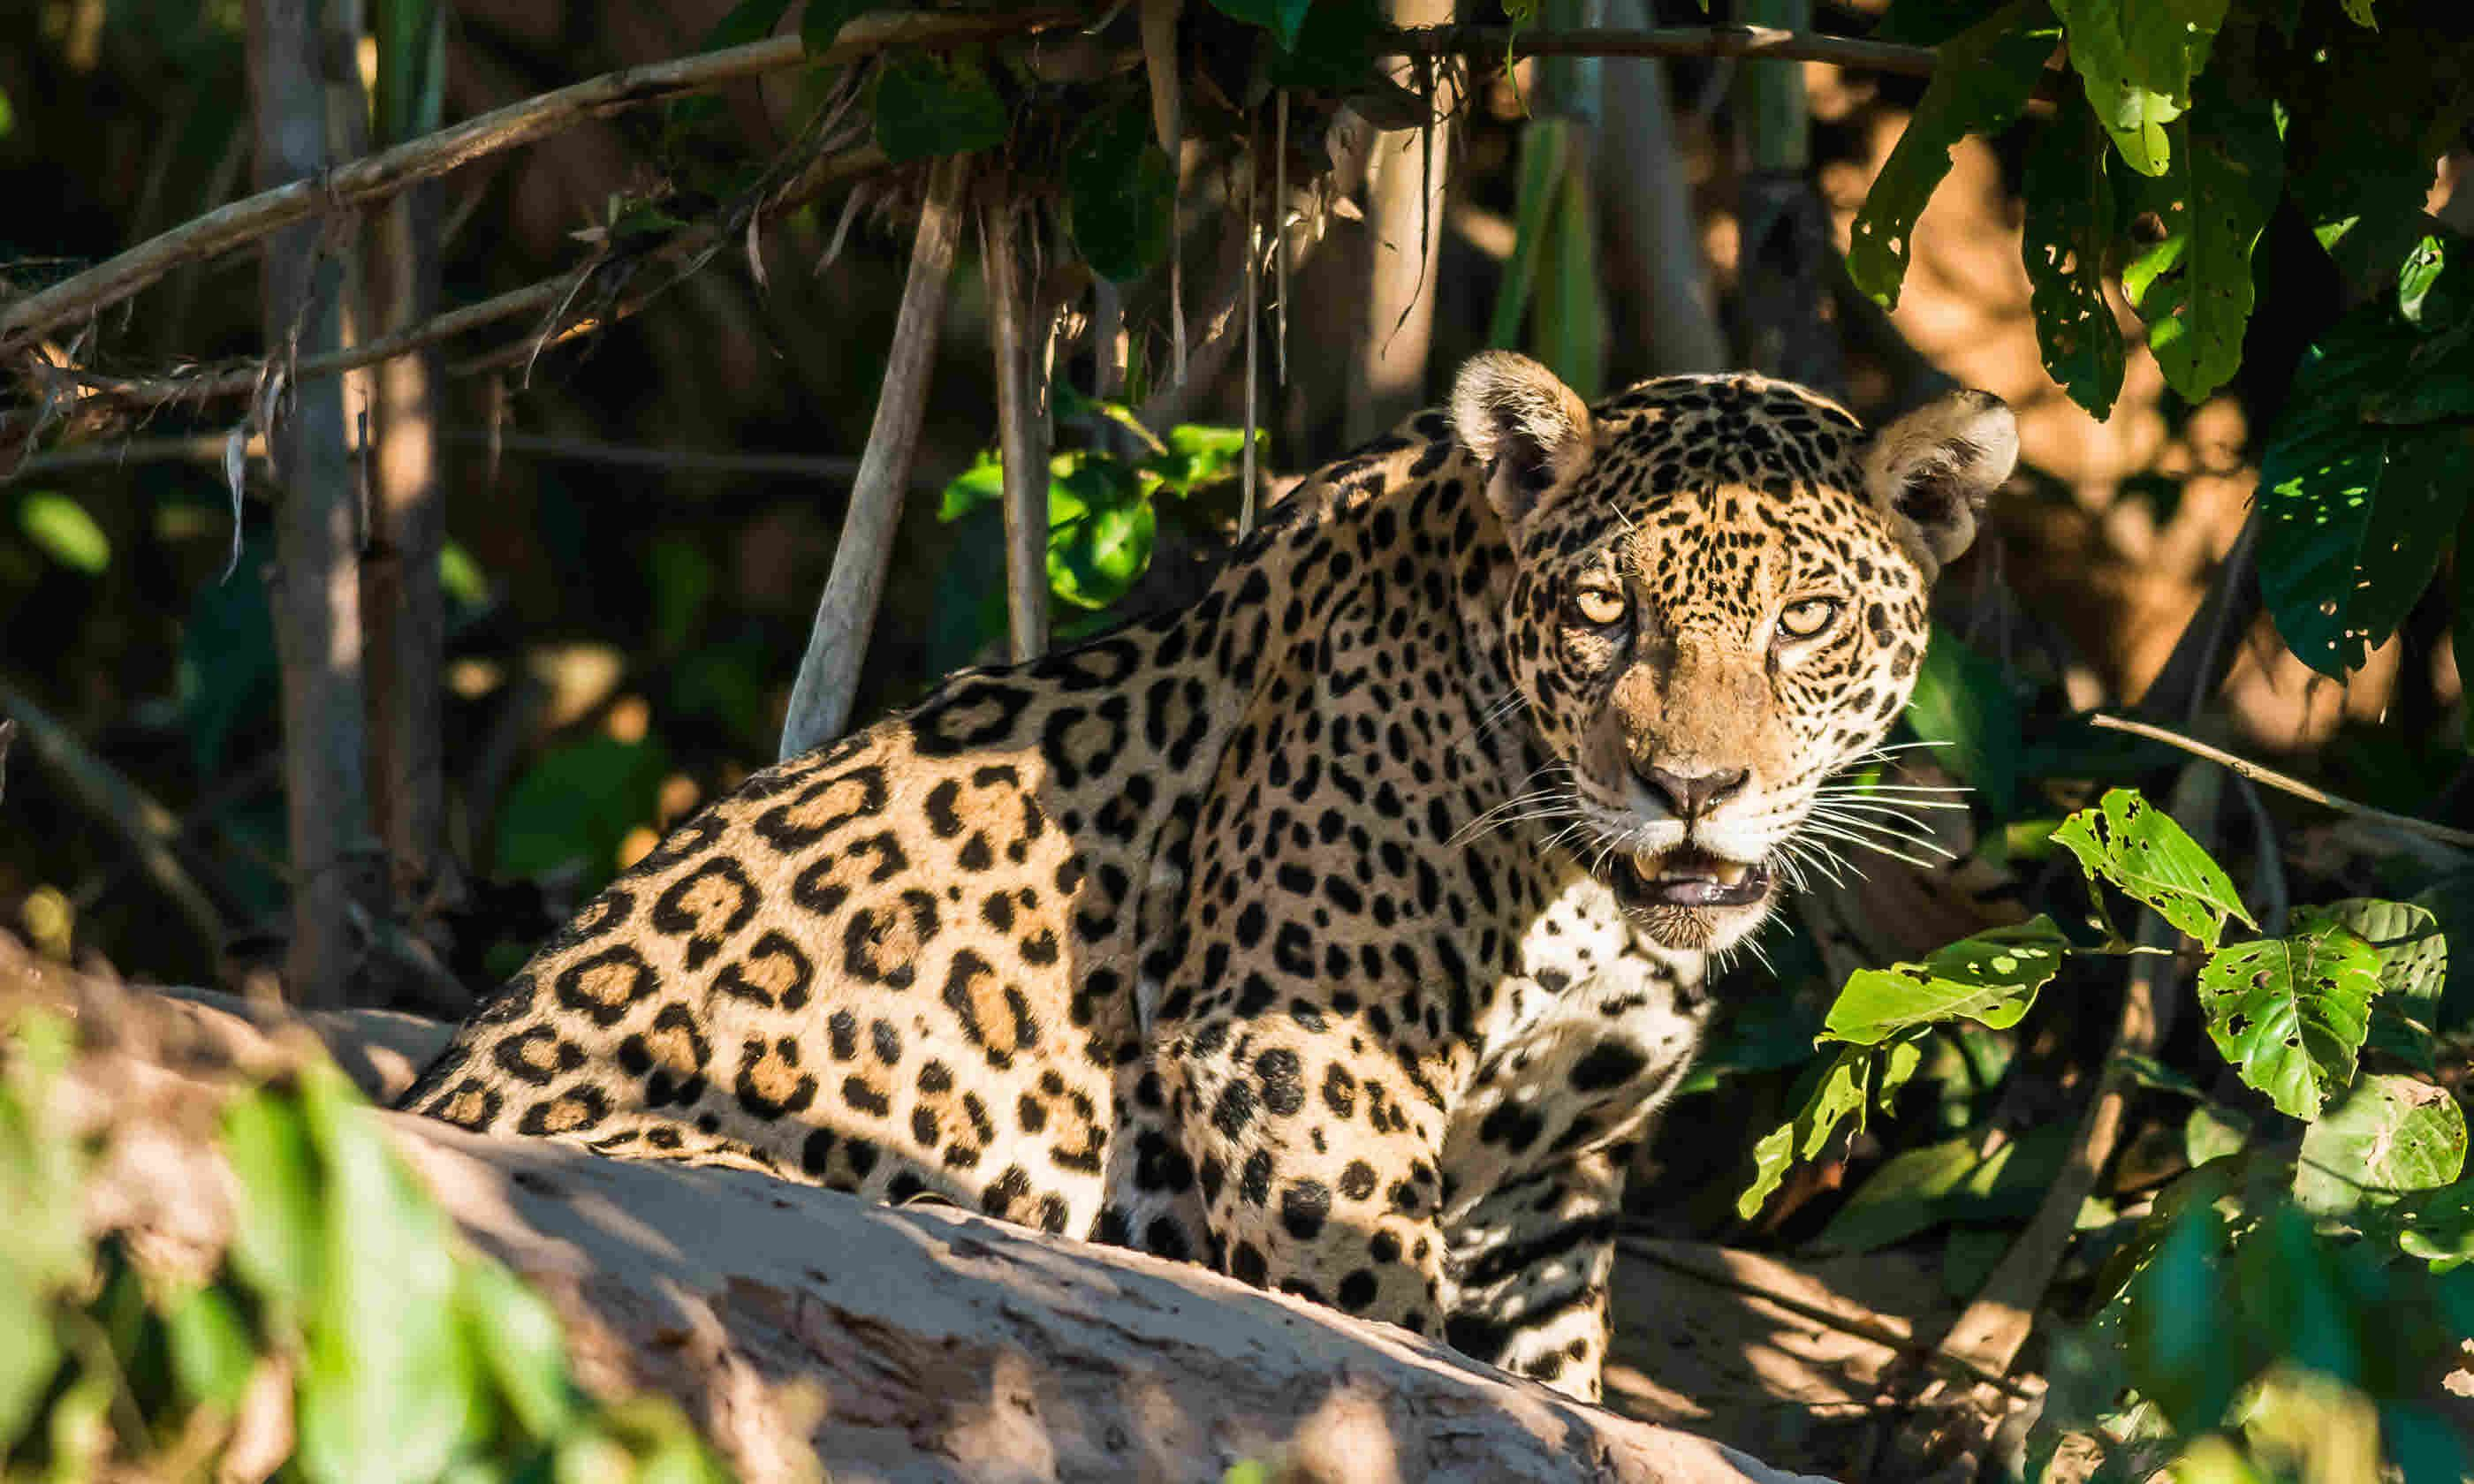 Jaguar in the peruvian Amazonian jungle (Shutterstock)